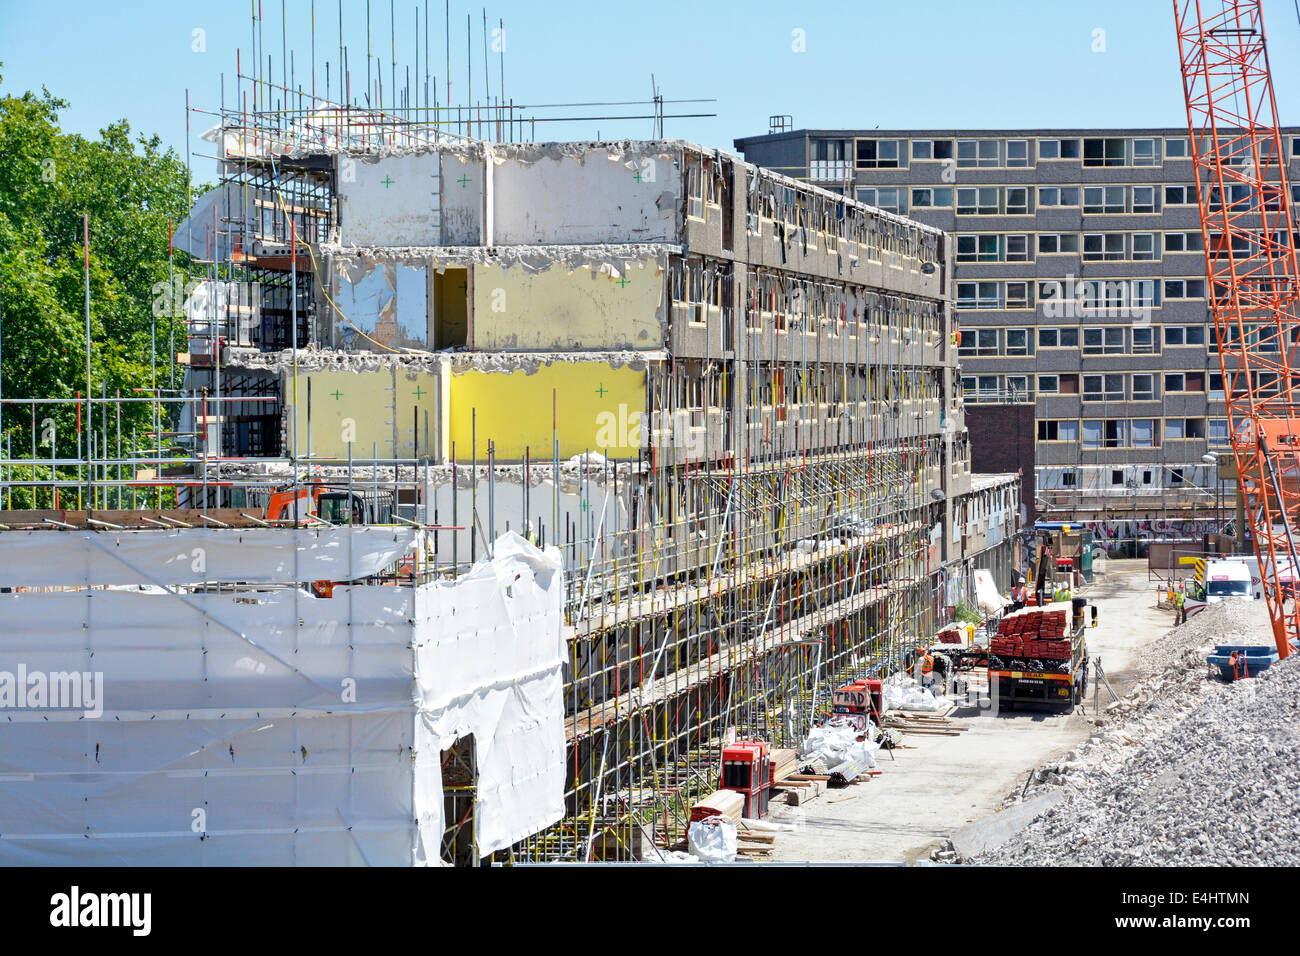 Obsolete precast concrete social housing dwellings on the Heygate Estate being demolished and cleared for redevelopment - Stock Image